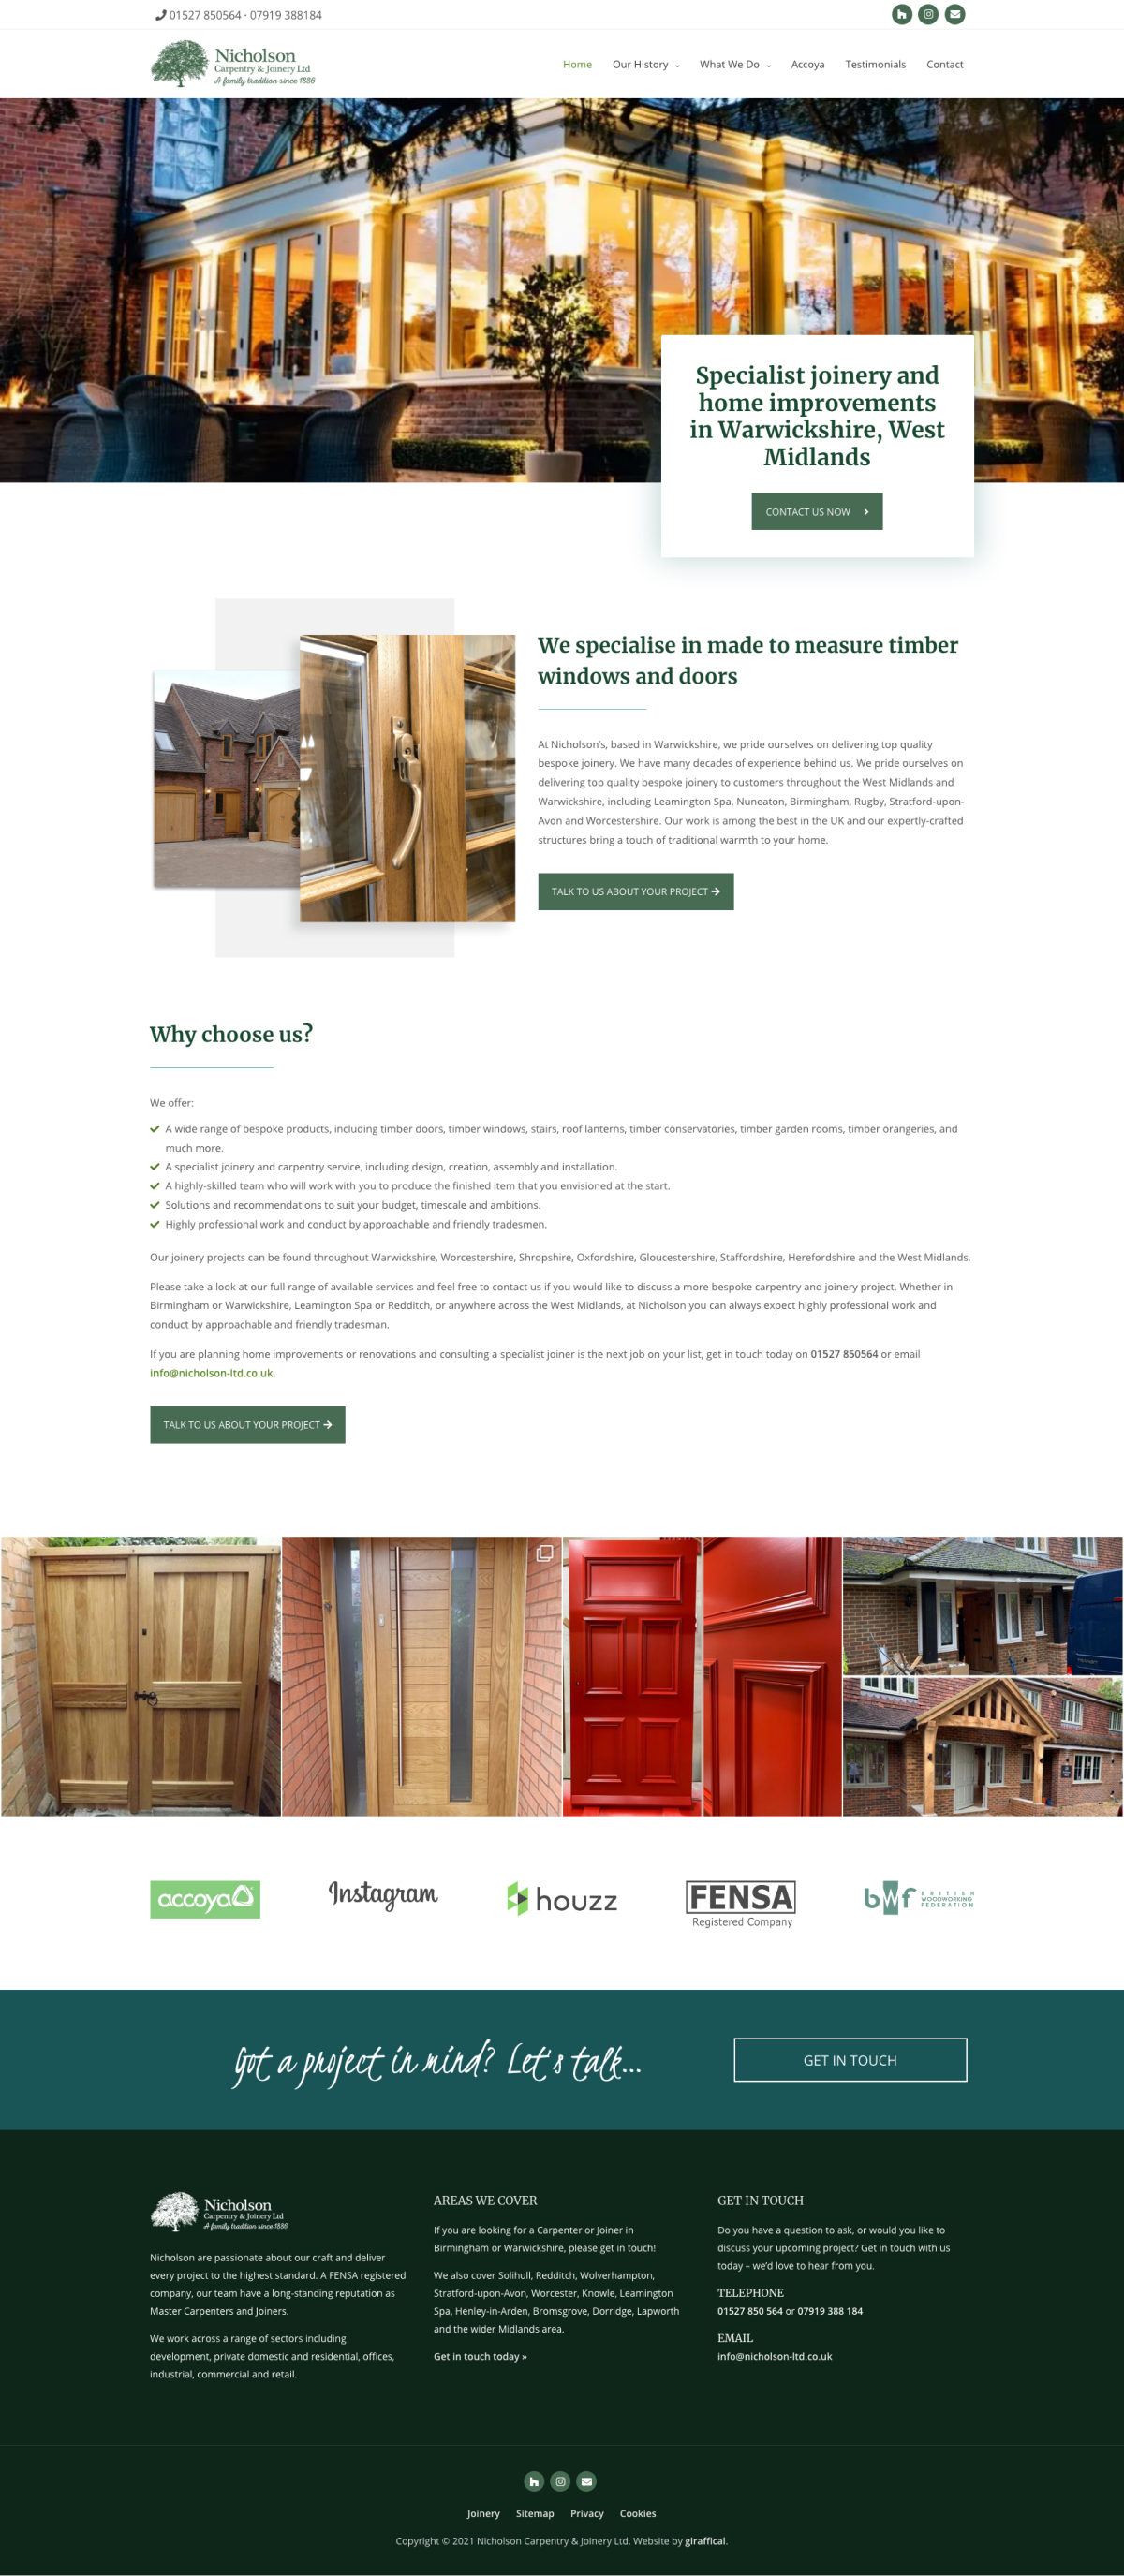 Carpenter Joiner Website Design - Nicholson Carpentry & Joinery - Home Page